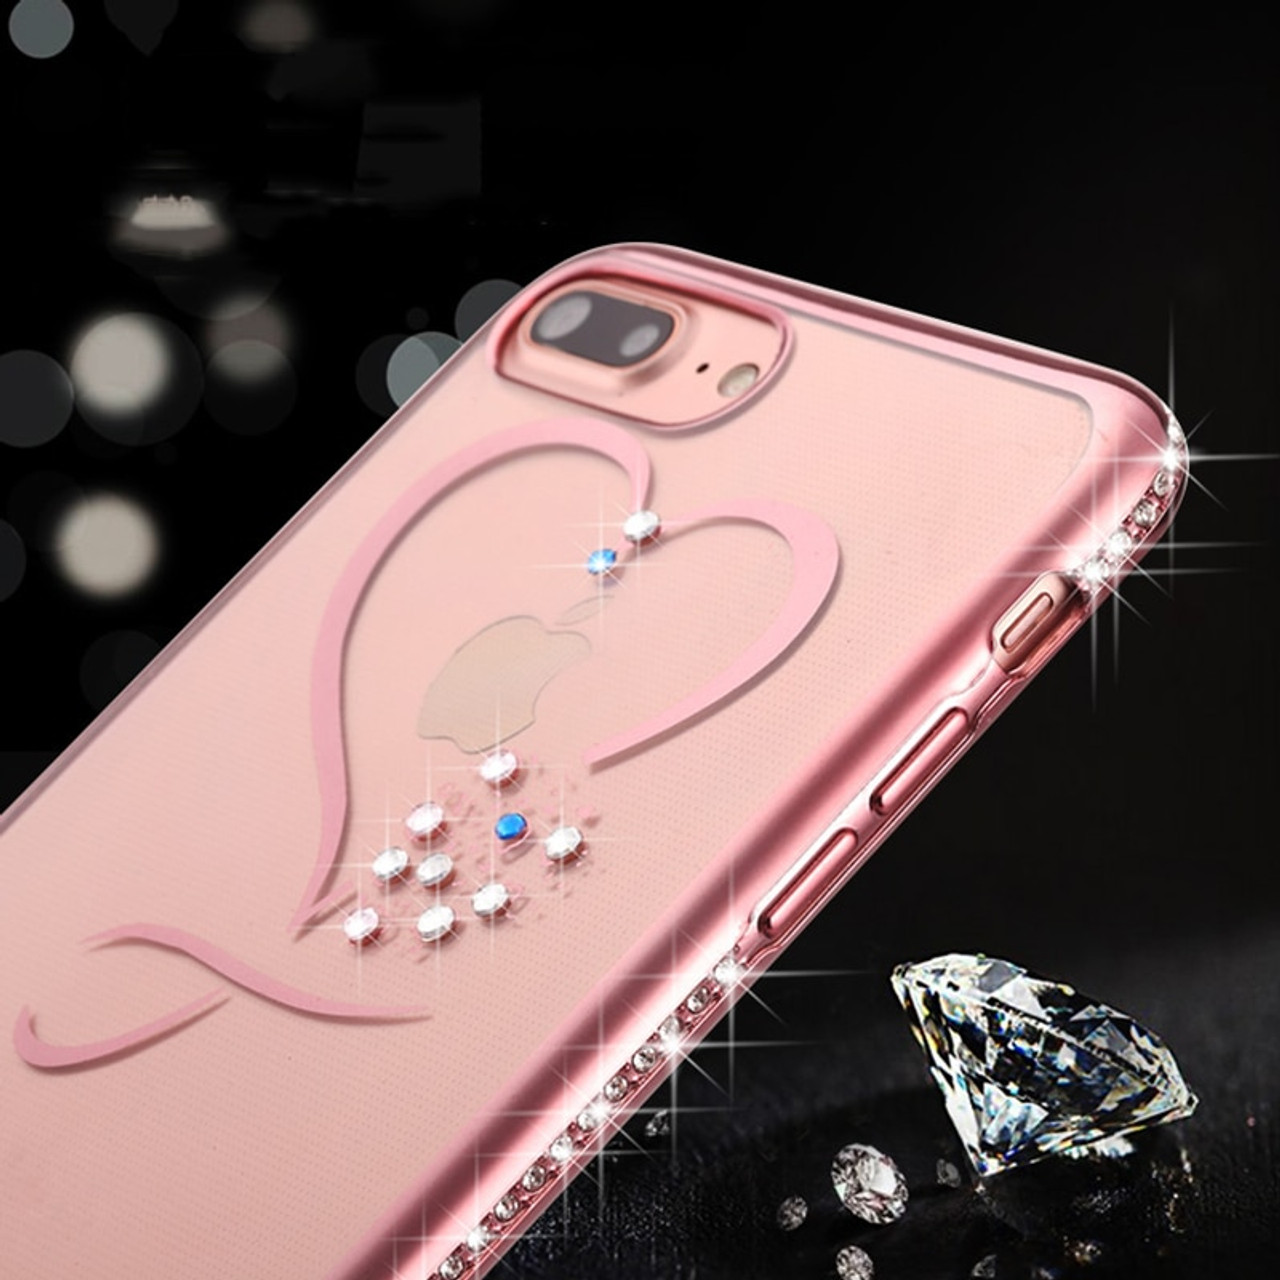 8138a43a70 ... Fashion Bling Crystal Heart Phone Cases For iphone 7 6 6S Plus Case  thin Clear Soft ...